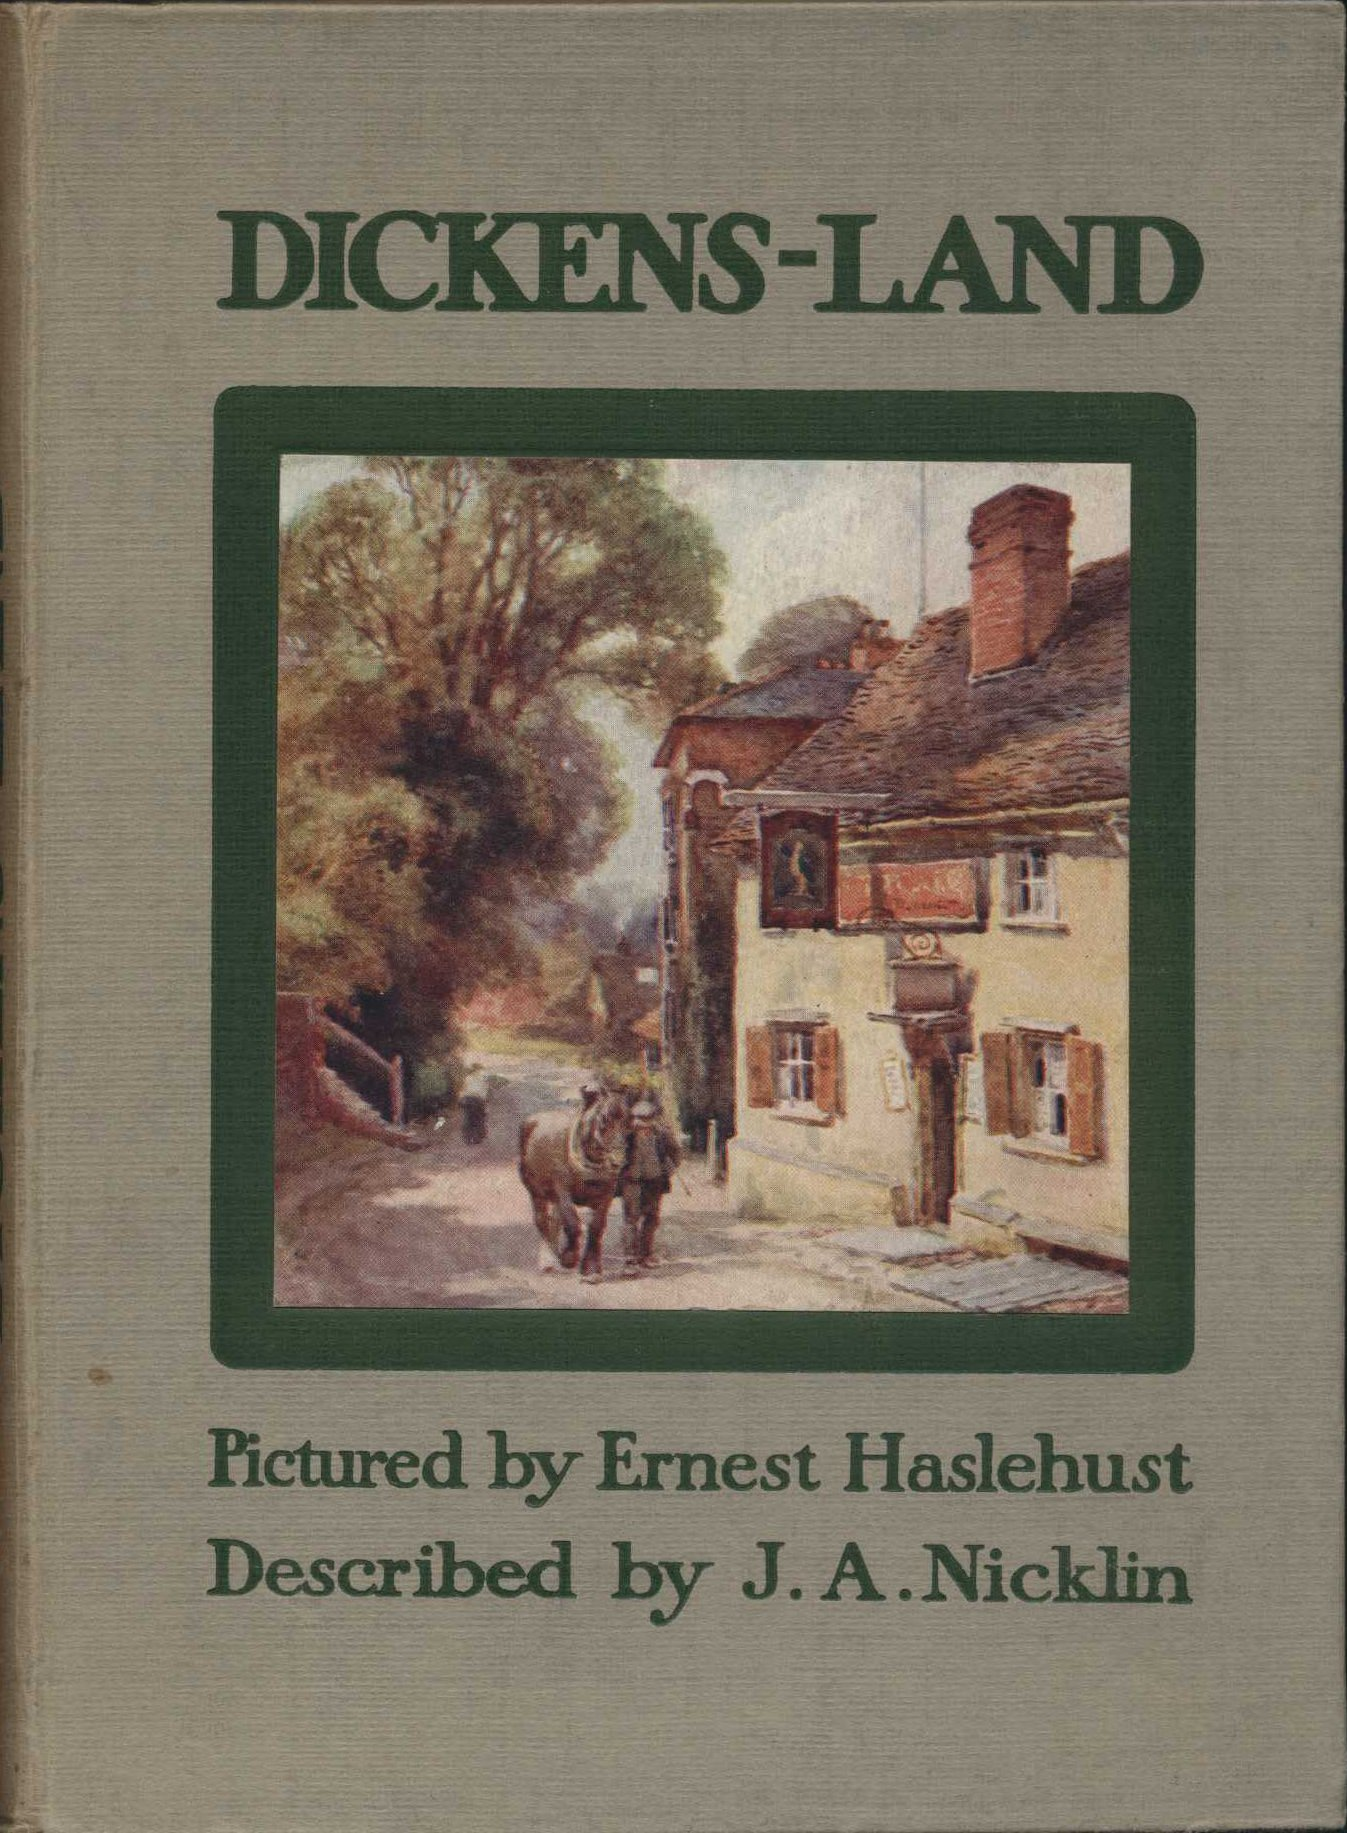 J.A. Nicklin. Dickens-land. Illustrations by Ernest Haslehust. London: Blackie and Son Limited, 1911.